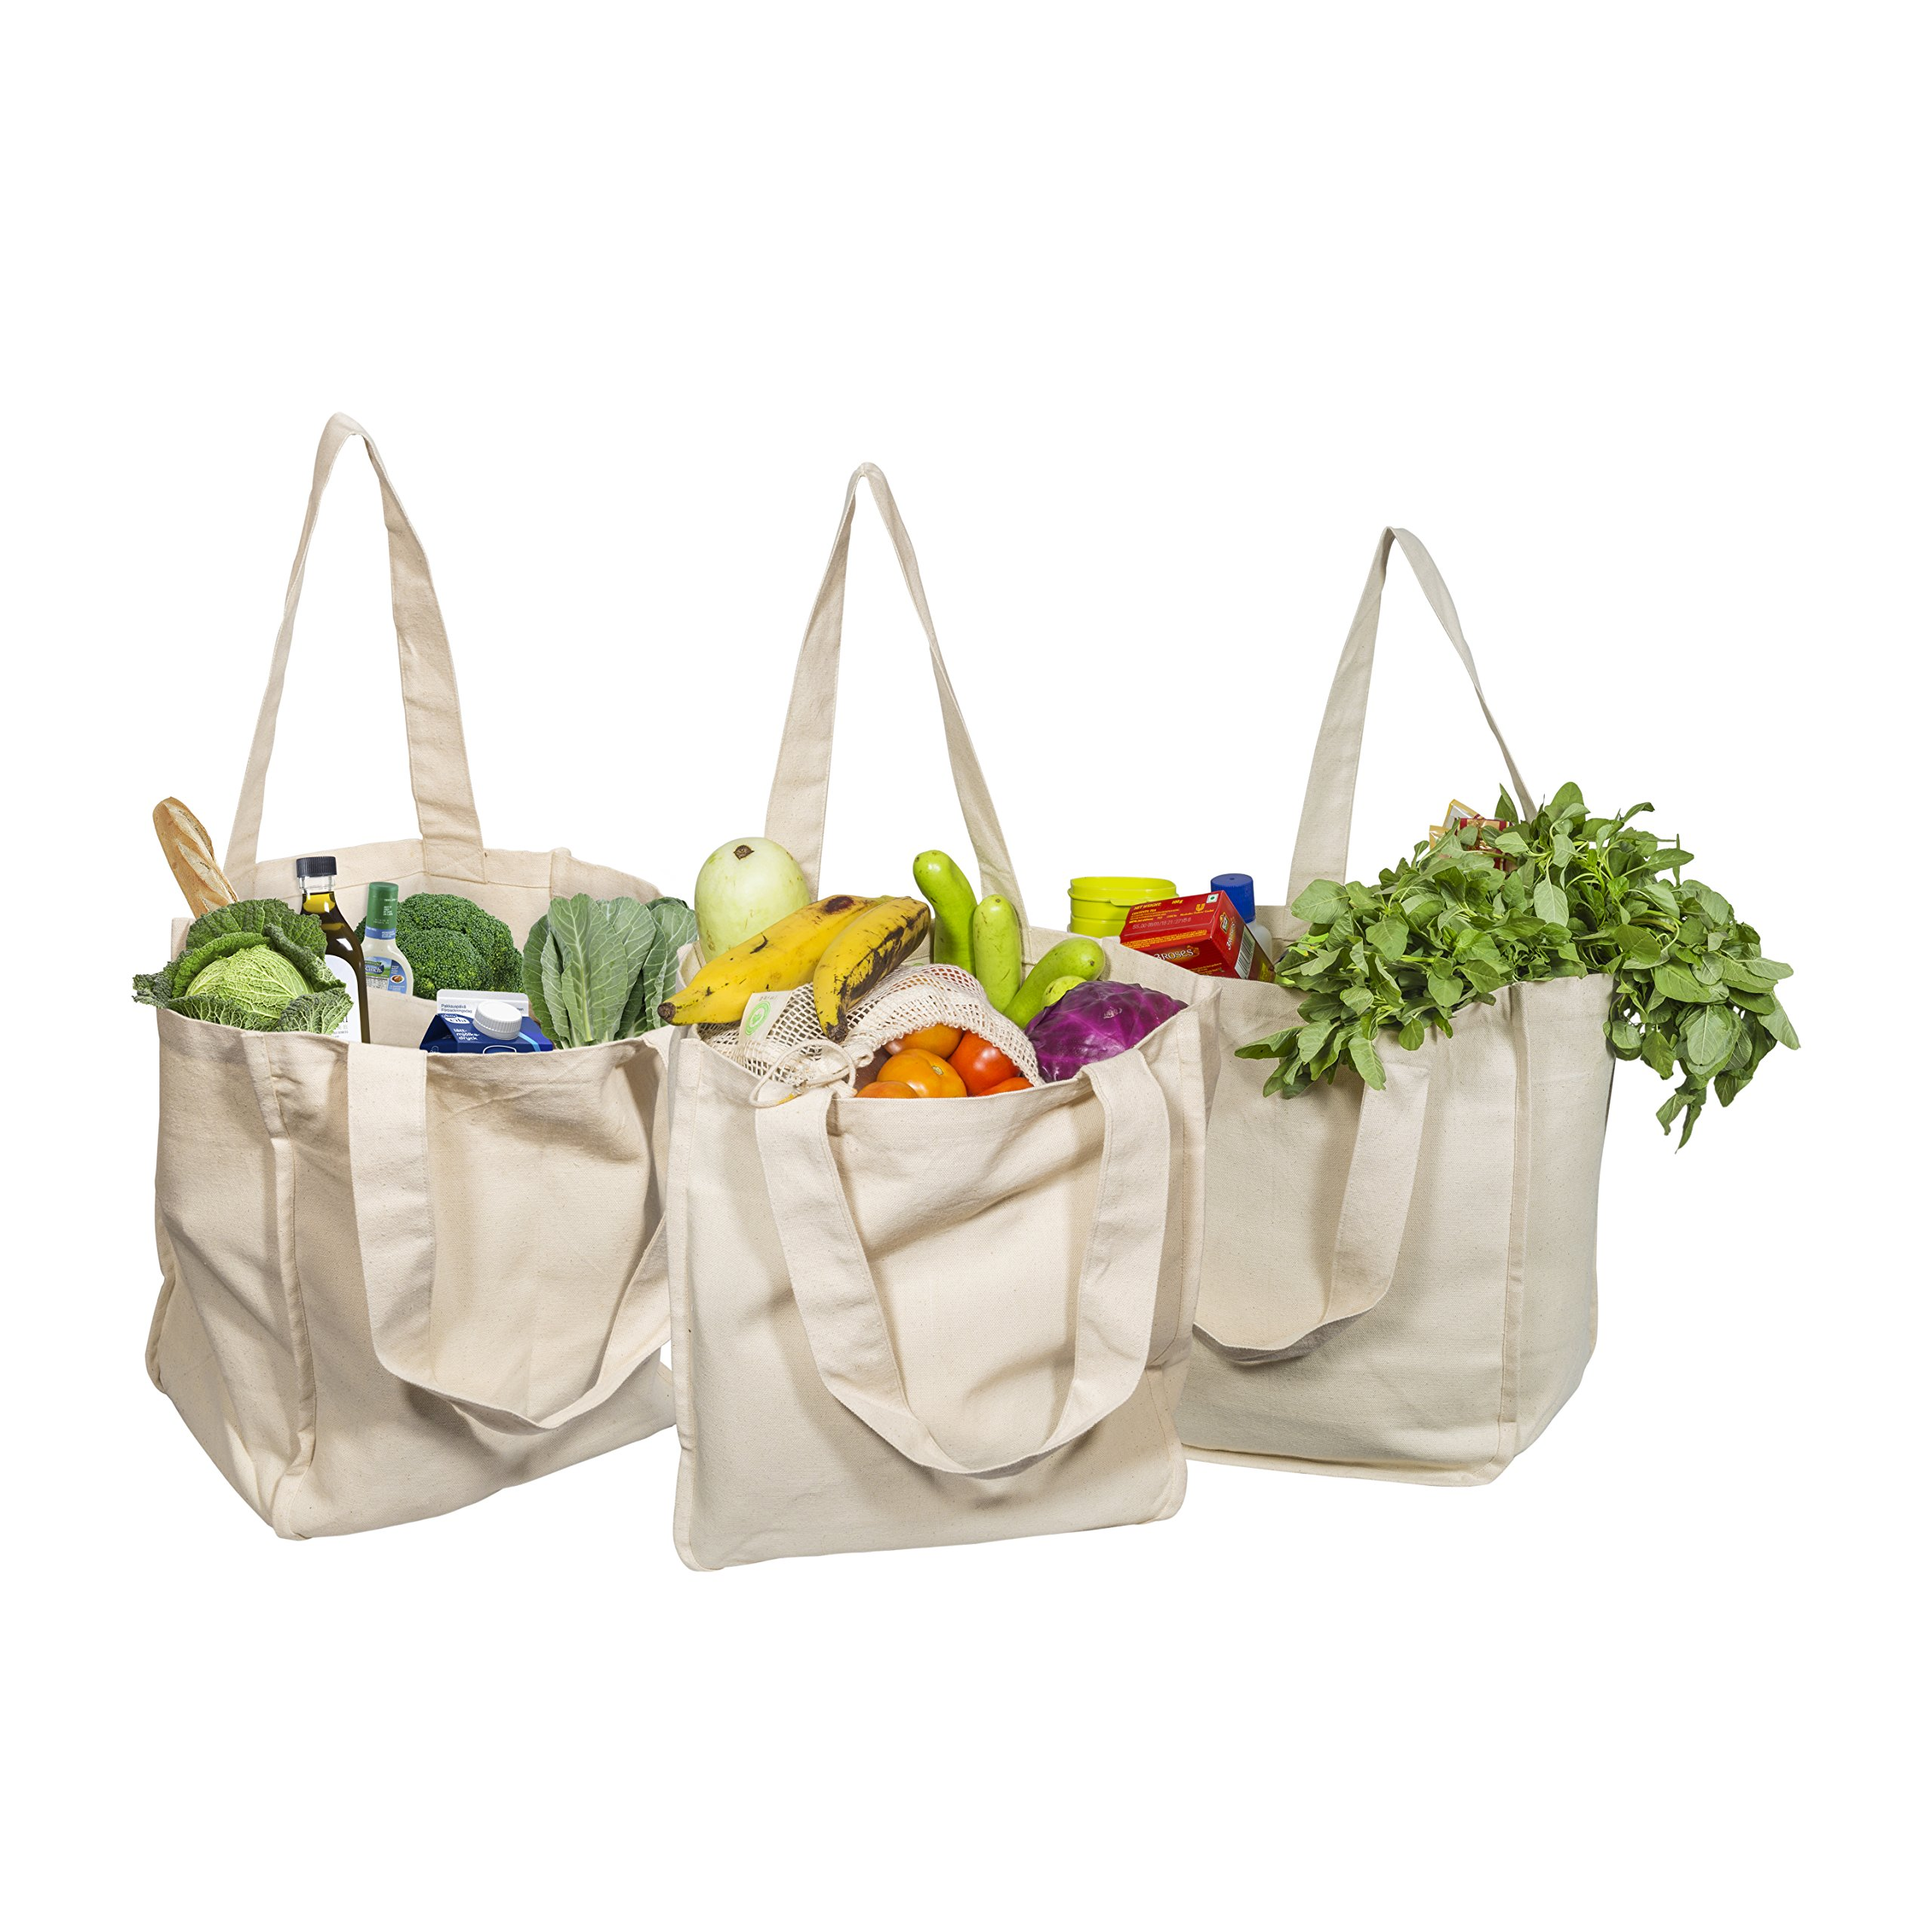 Best Canvas Grocery Shopping Bags - Canvas Grocery Shopping Bags with Handles - Cloth Grocery Tote Bags - Reusable Shopping Grocery Bags - Organic Cotton Washable & Eco-friendly Bags (3 Bags) by Organic Cotton Mart